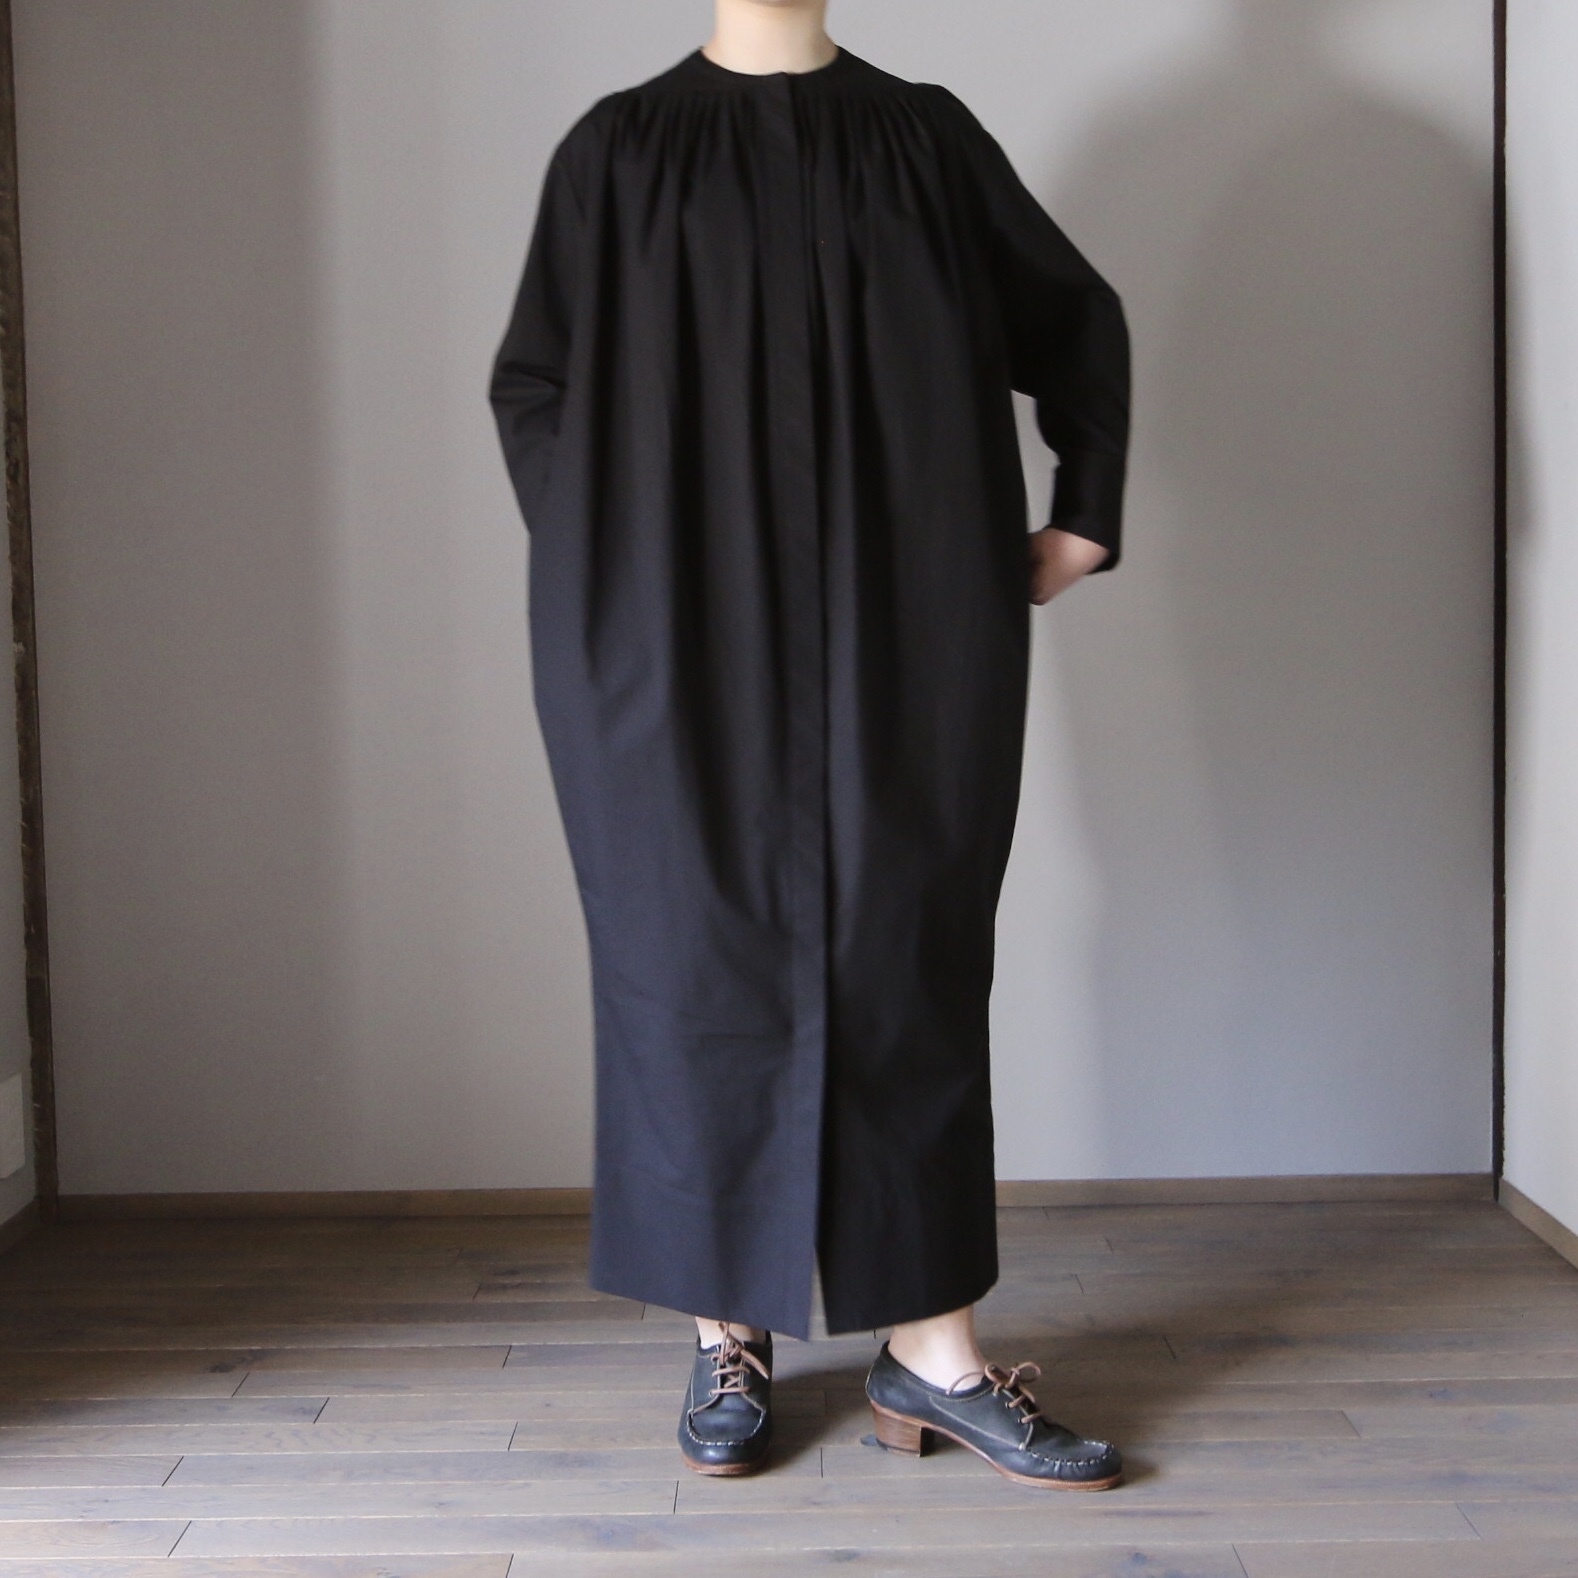 TENNE HANDCRAFTED MODERN/テン・ハンドクラフティッド・モダン SPINDLE LINE ONE-PIECE#21-021 BLACK